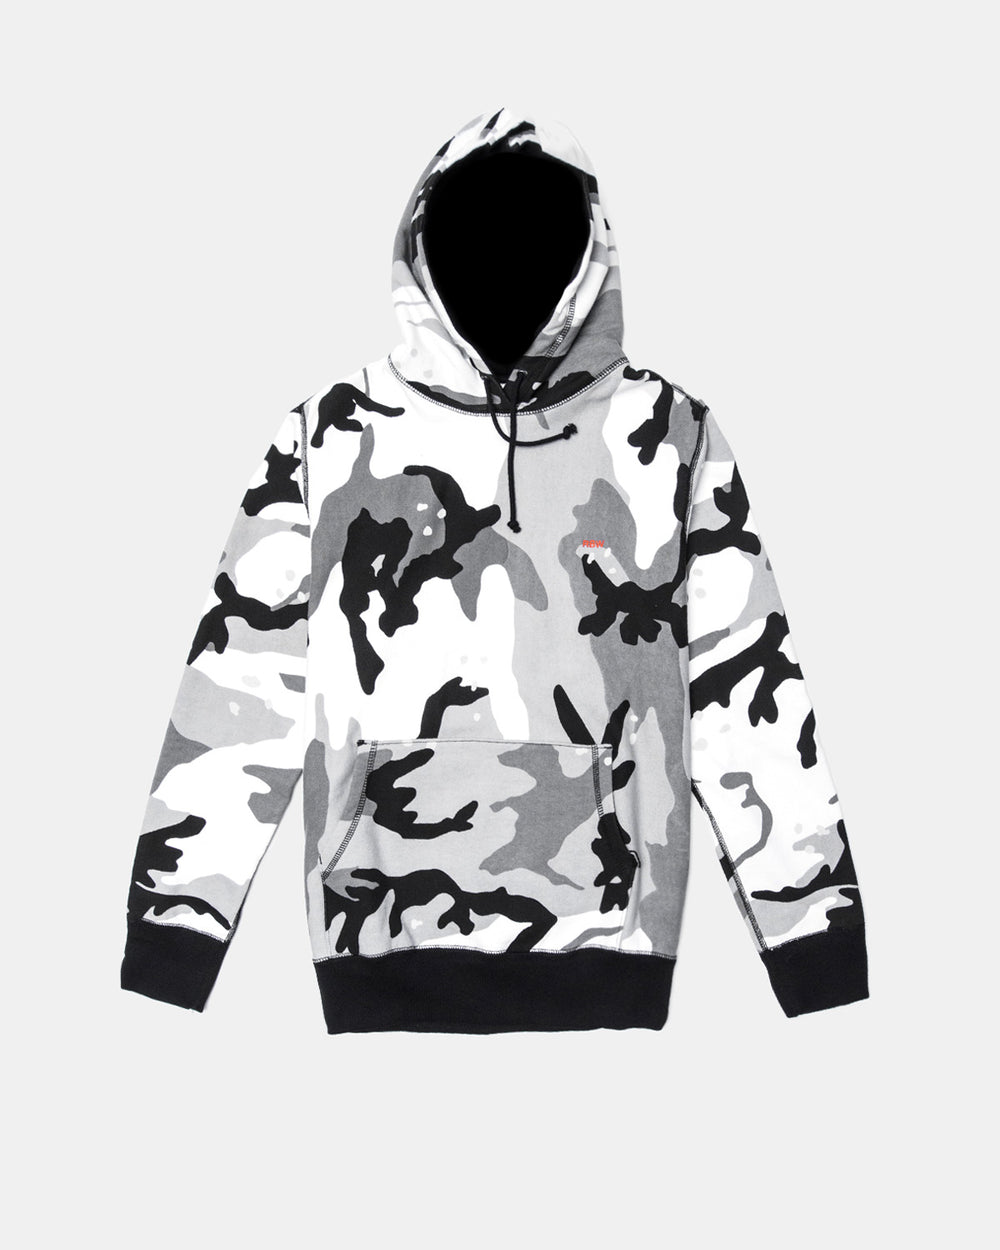 Raised by Wolves - Blizzard Hooded Sweatshirt (Black | White | Grey | Camo)